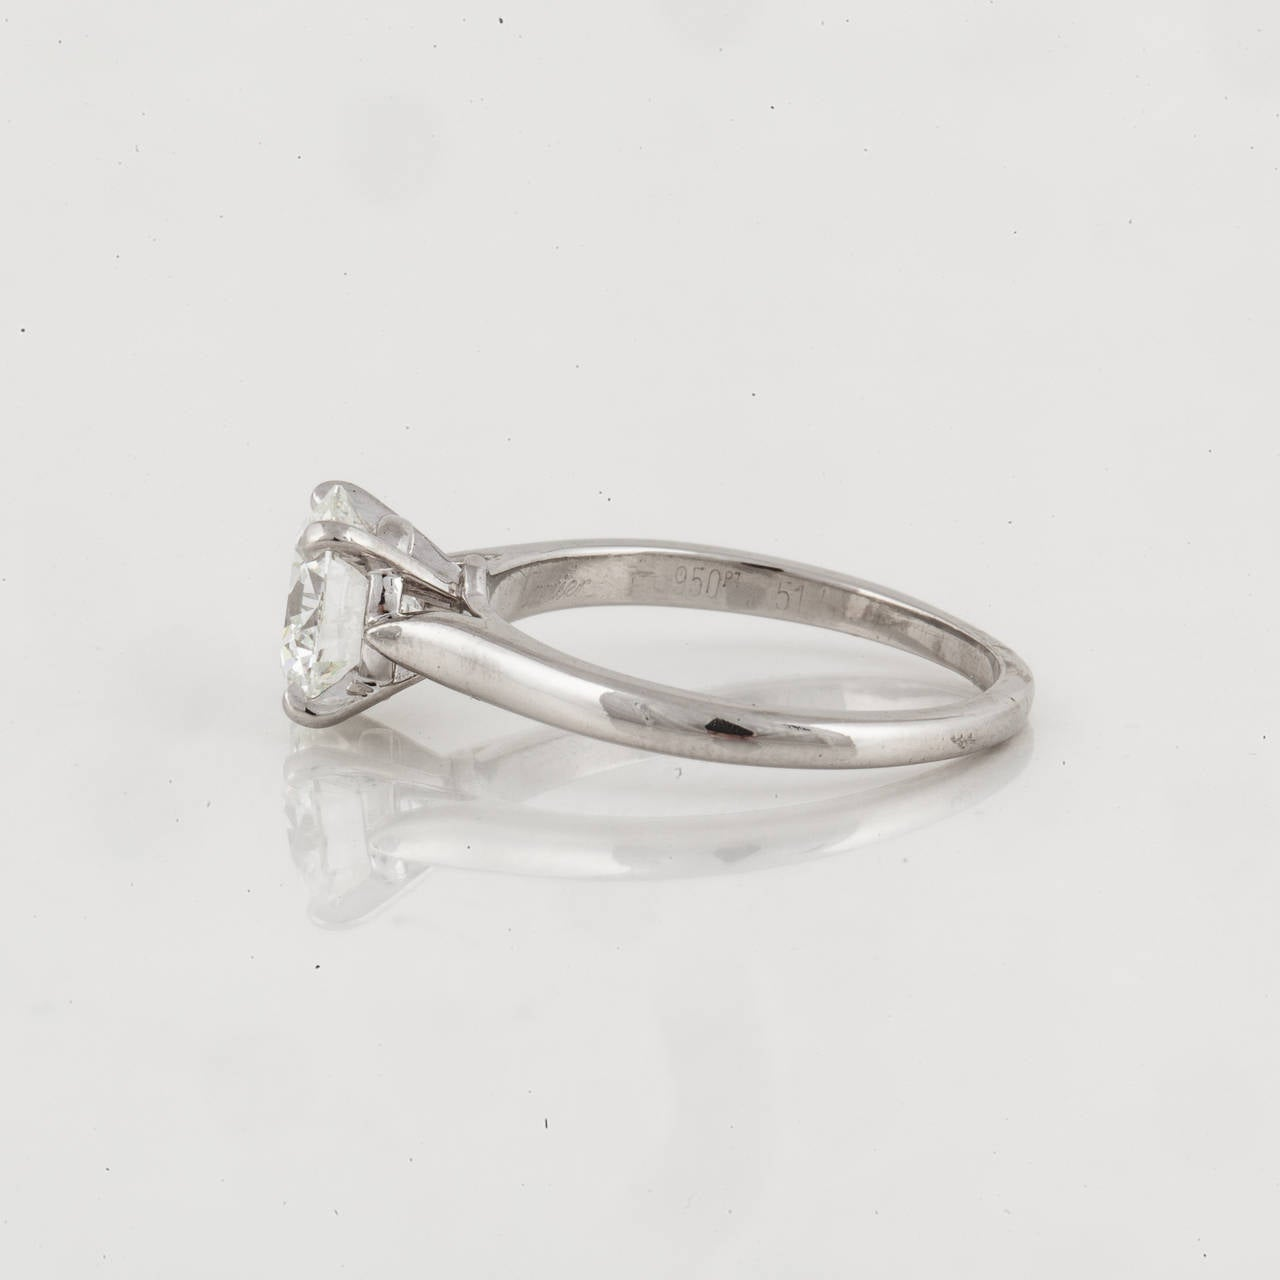 Cartier GIA Certified Diamond Platinum Solitaire Ring In Excellent Condition For Sale In Houston, TX